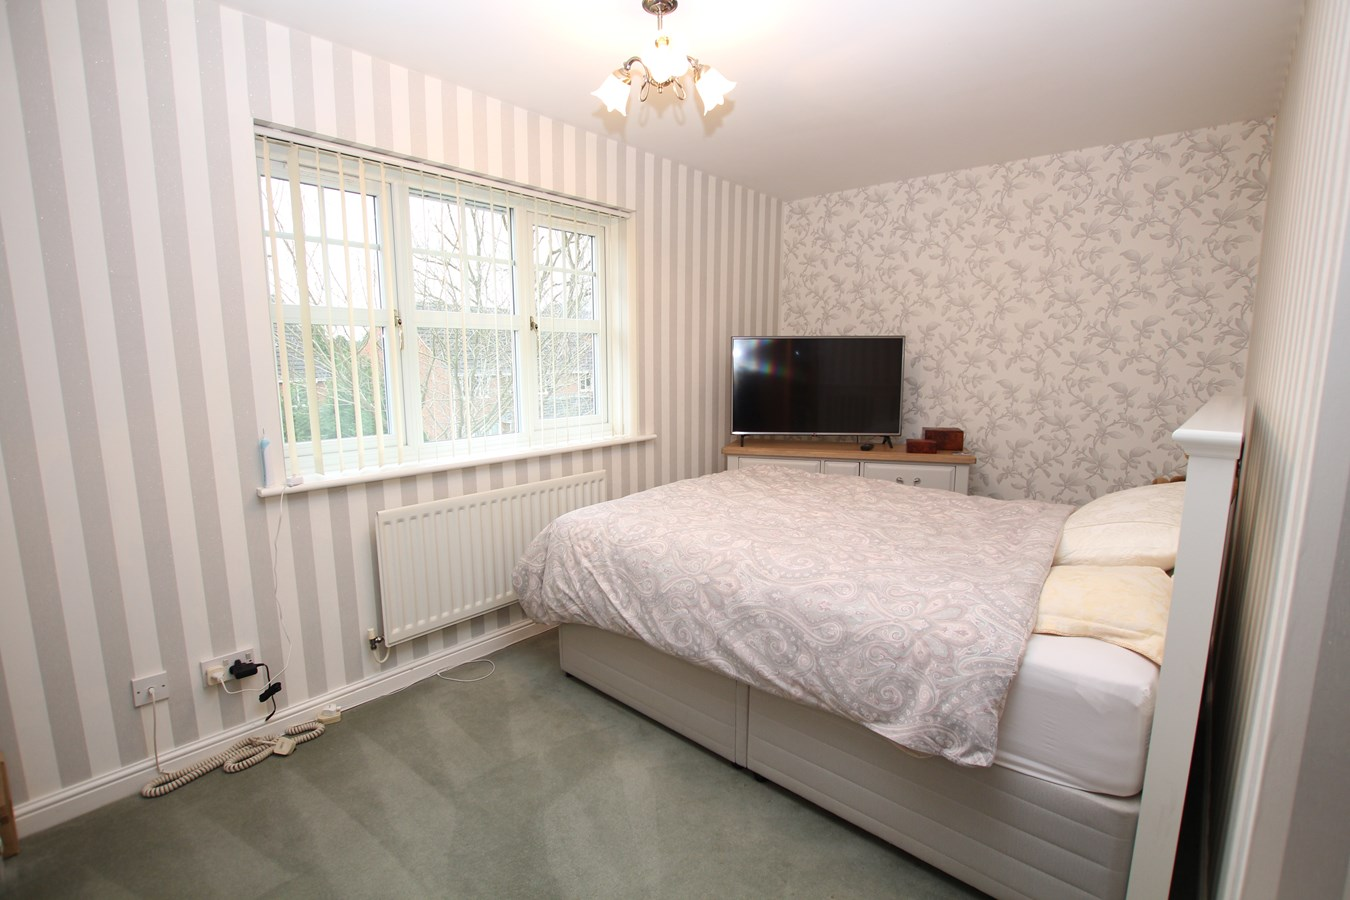 4 Bedroom Detached House For Sale In Sutton Coldfield